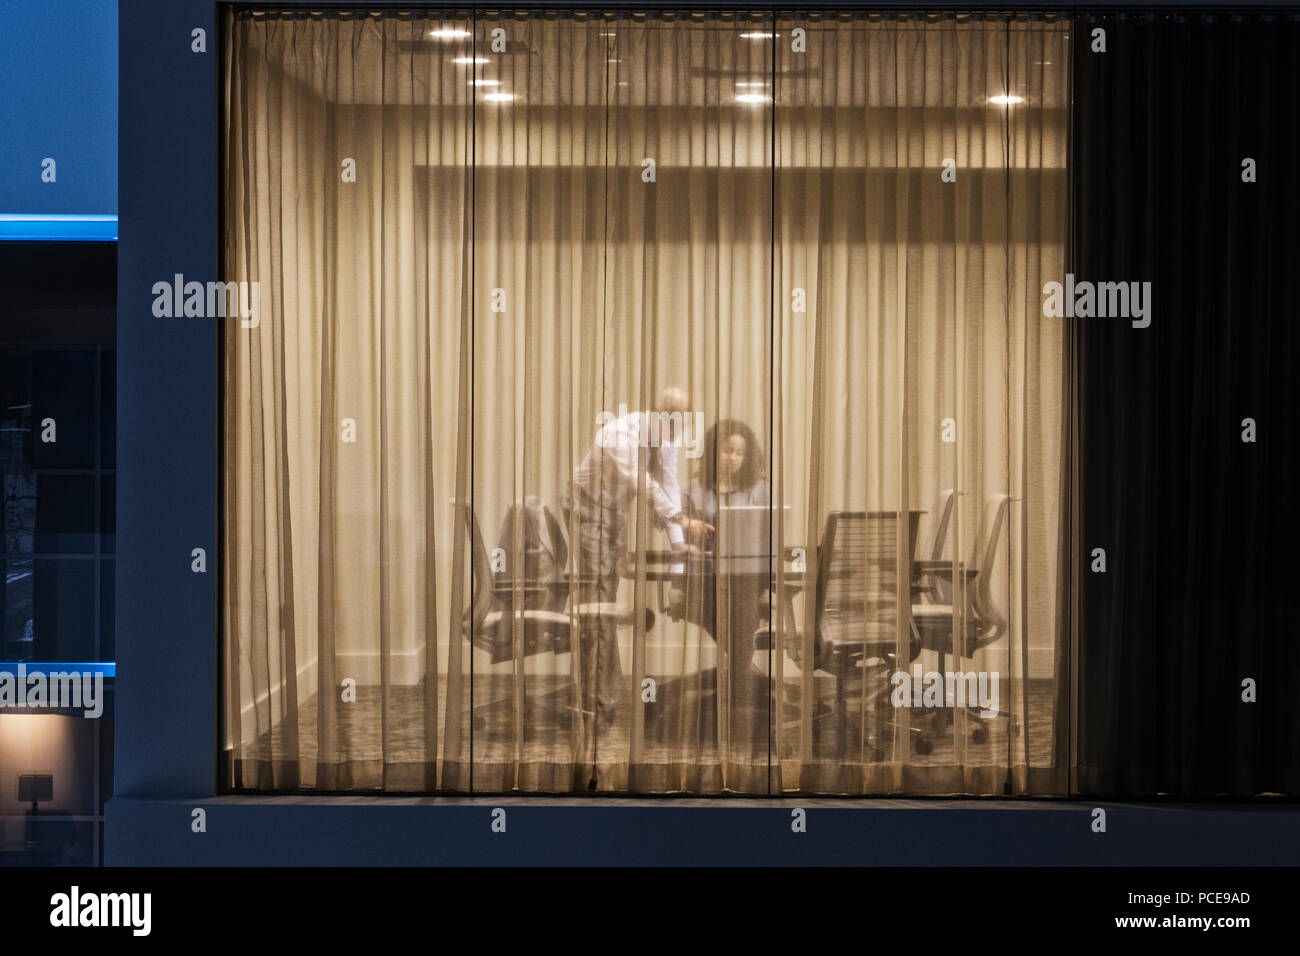 A night view looking into a conference room with two businesspeople working at conference table. - Stock Image